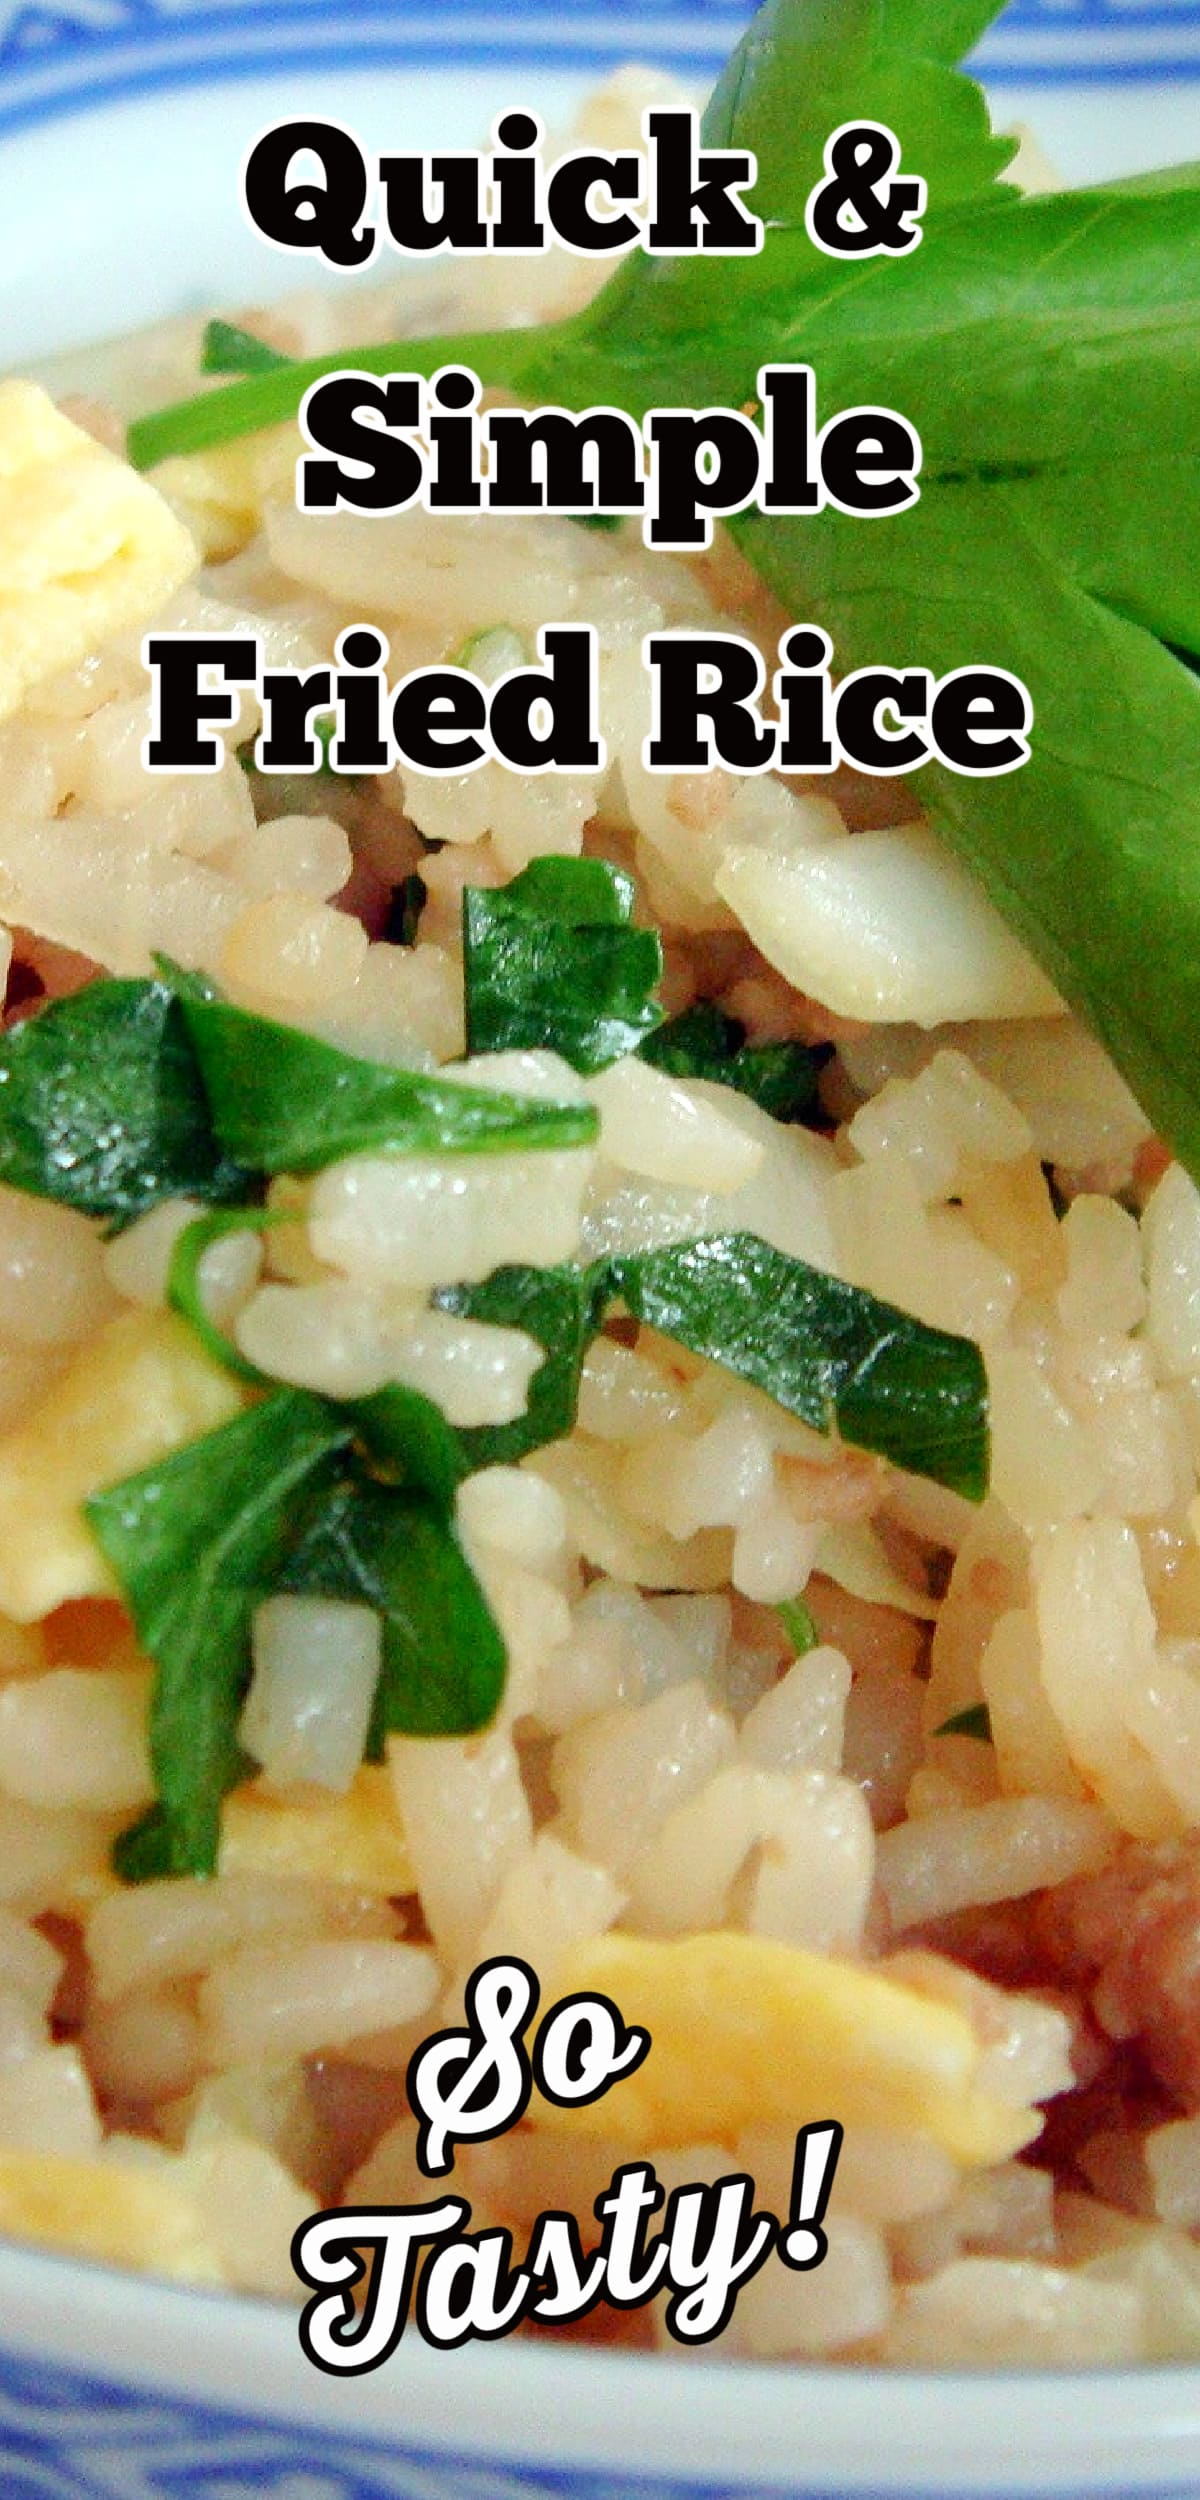 Quick and Simple Fried Rice. A very easy recipe using inexpensive ingredients to give you an authentic flavor of fried rice. Serve as a main or side dish.